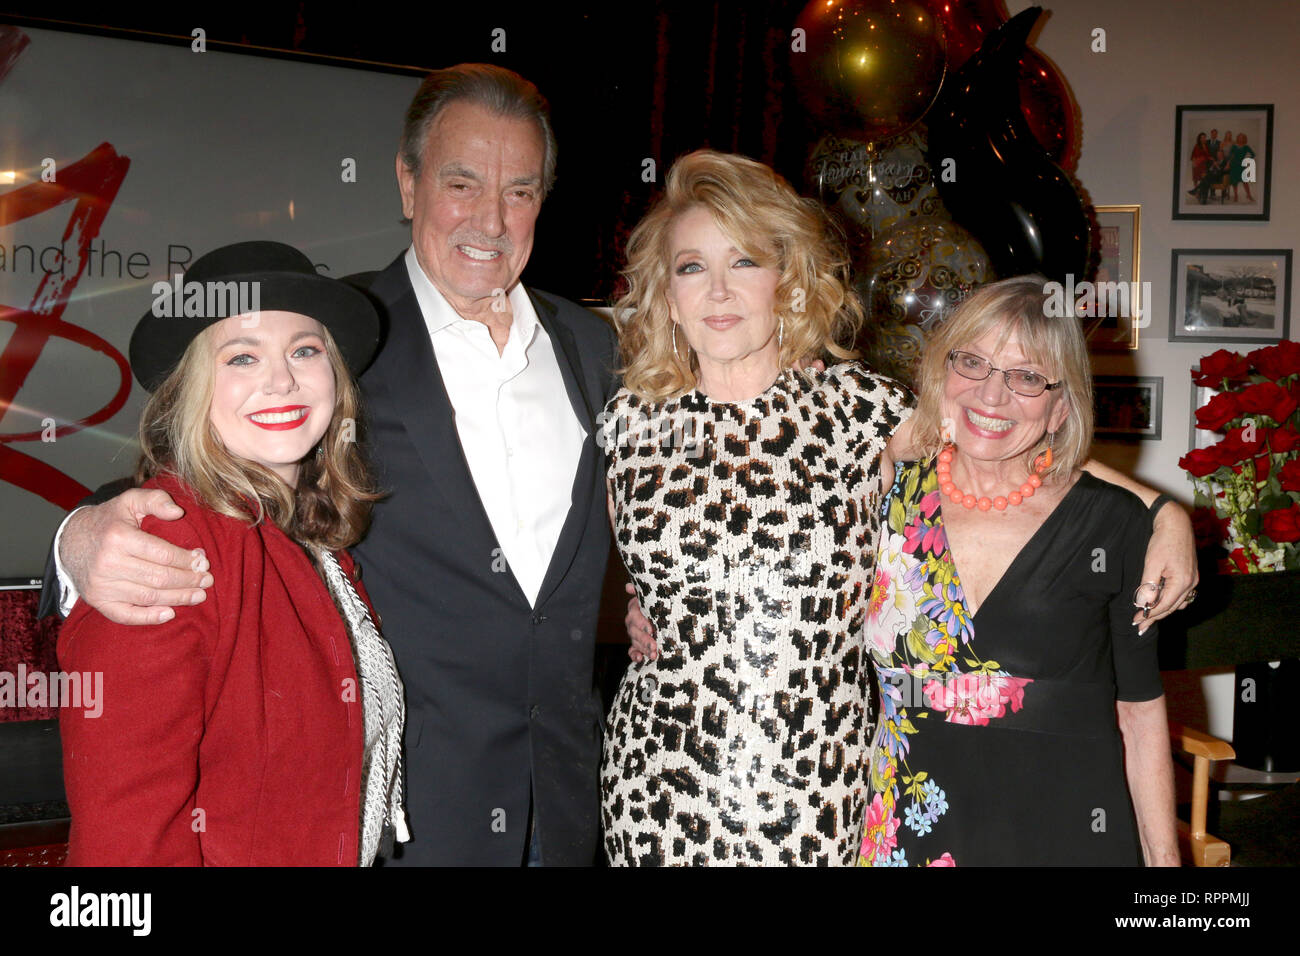 Page 3 Eric Braeden High Resolution Stock Photography And Images Alamy She is also known as the wife of the famous actor, eric braeden. https www alamy com los angeles ca usa 20th feb 2019 los angeles feb 20 conci nelson eric braeden melody thomas scott kay alden at the melody thomas scott celebrates 40 years on yr event at cbs television city on february 20 2019 in los angeles ca credit kay blakezuma wirealamy live news image237756362 html